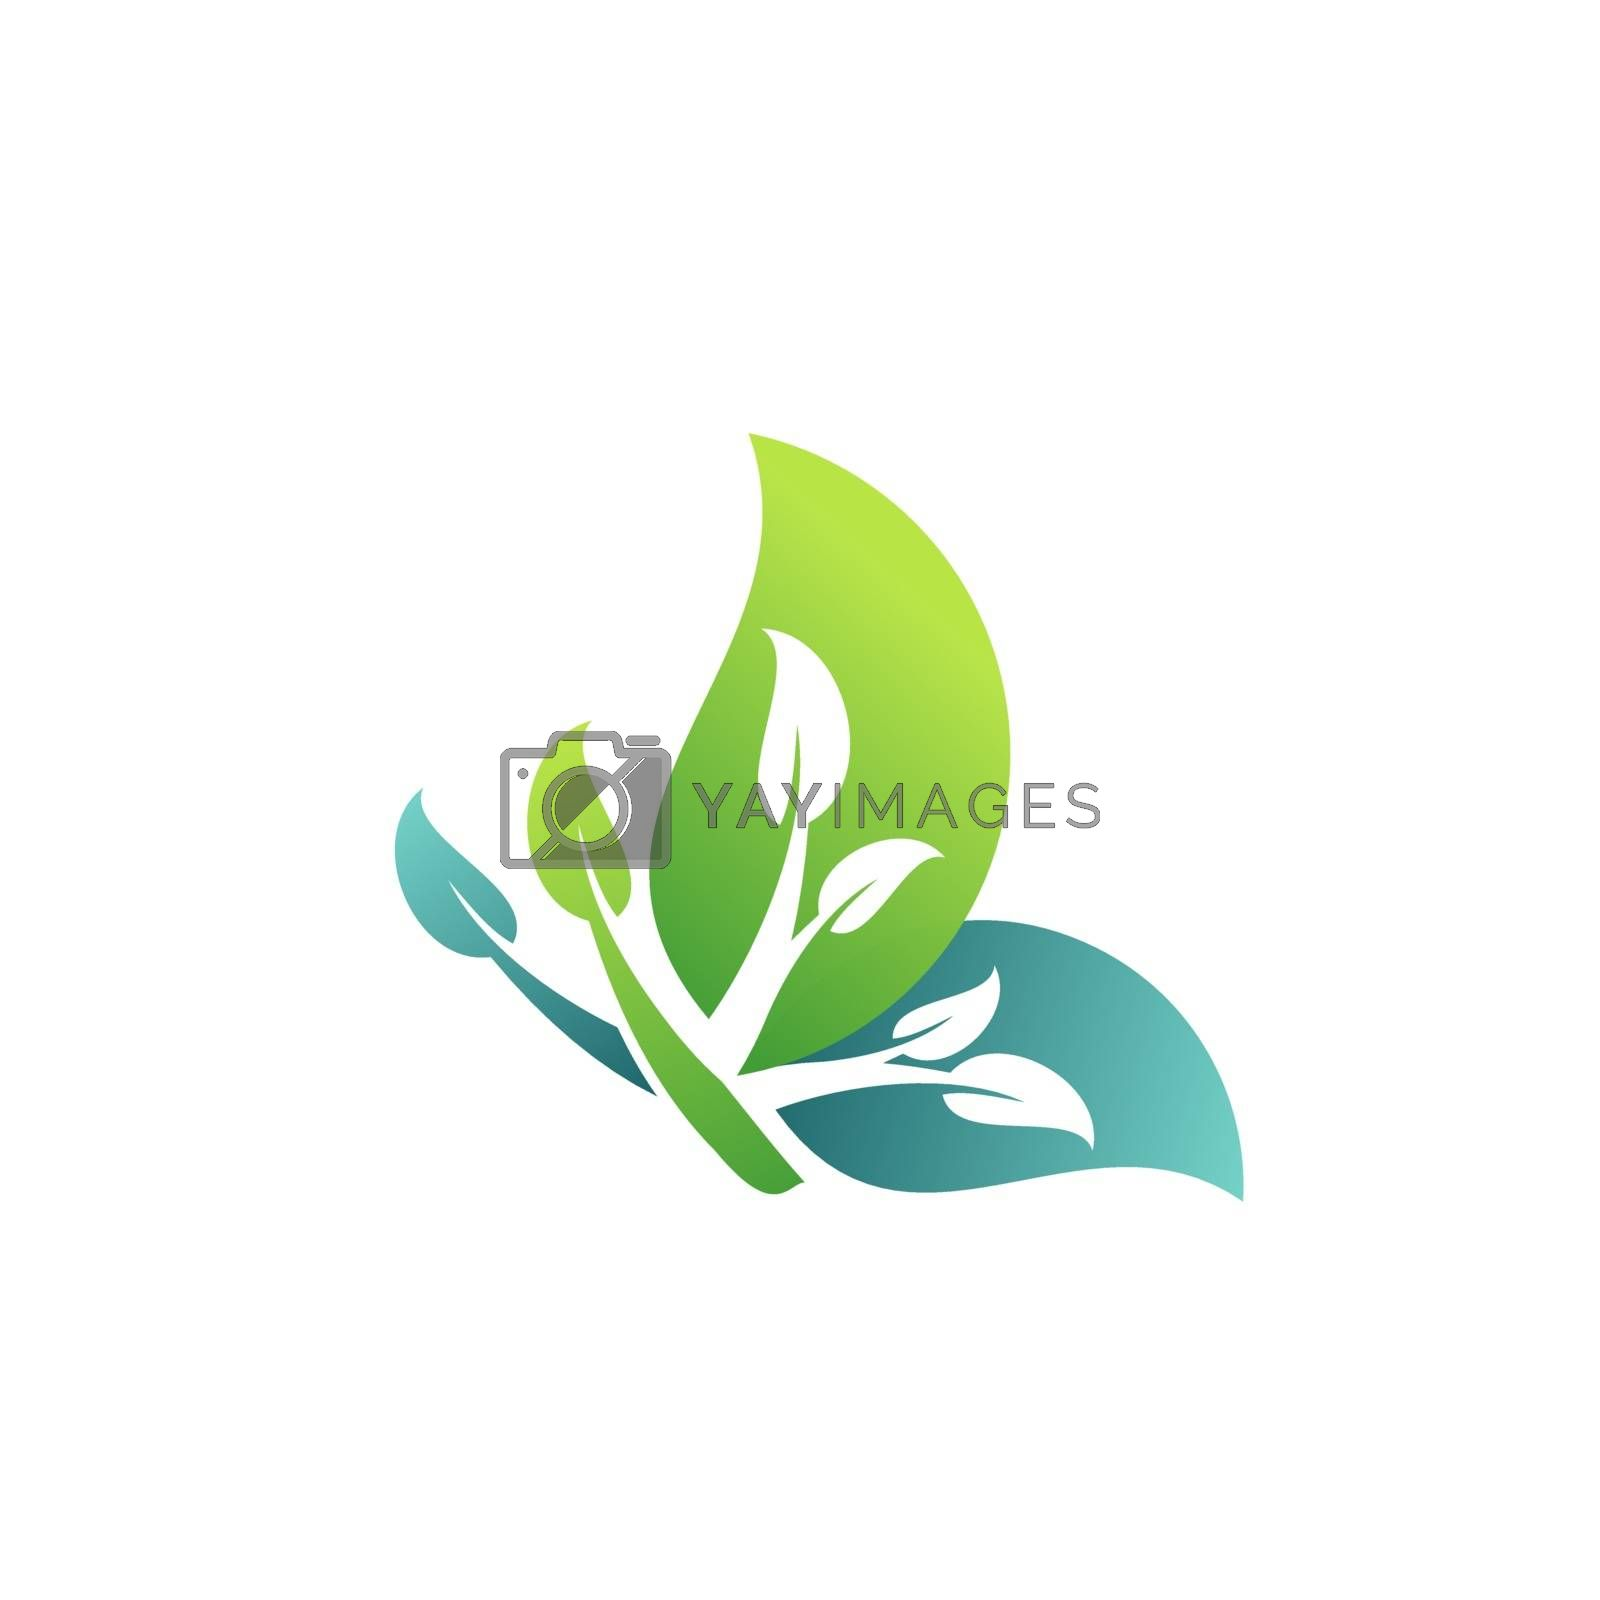 nature plants concept beauty green leaf butterfly logo symbol icon vector design illustration